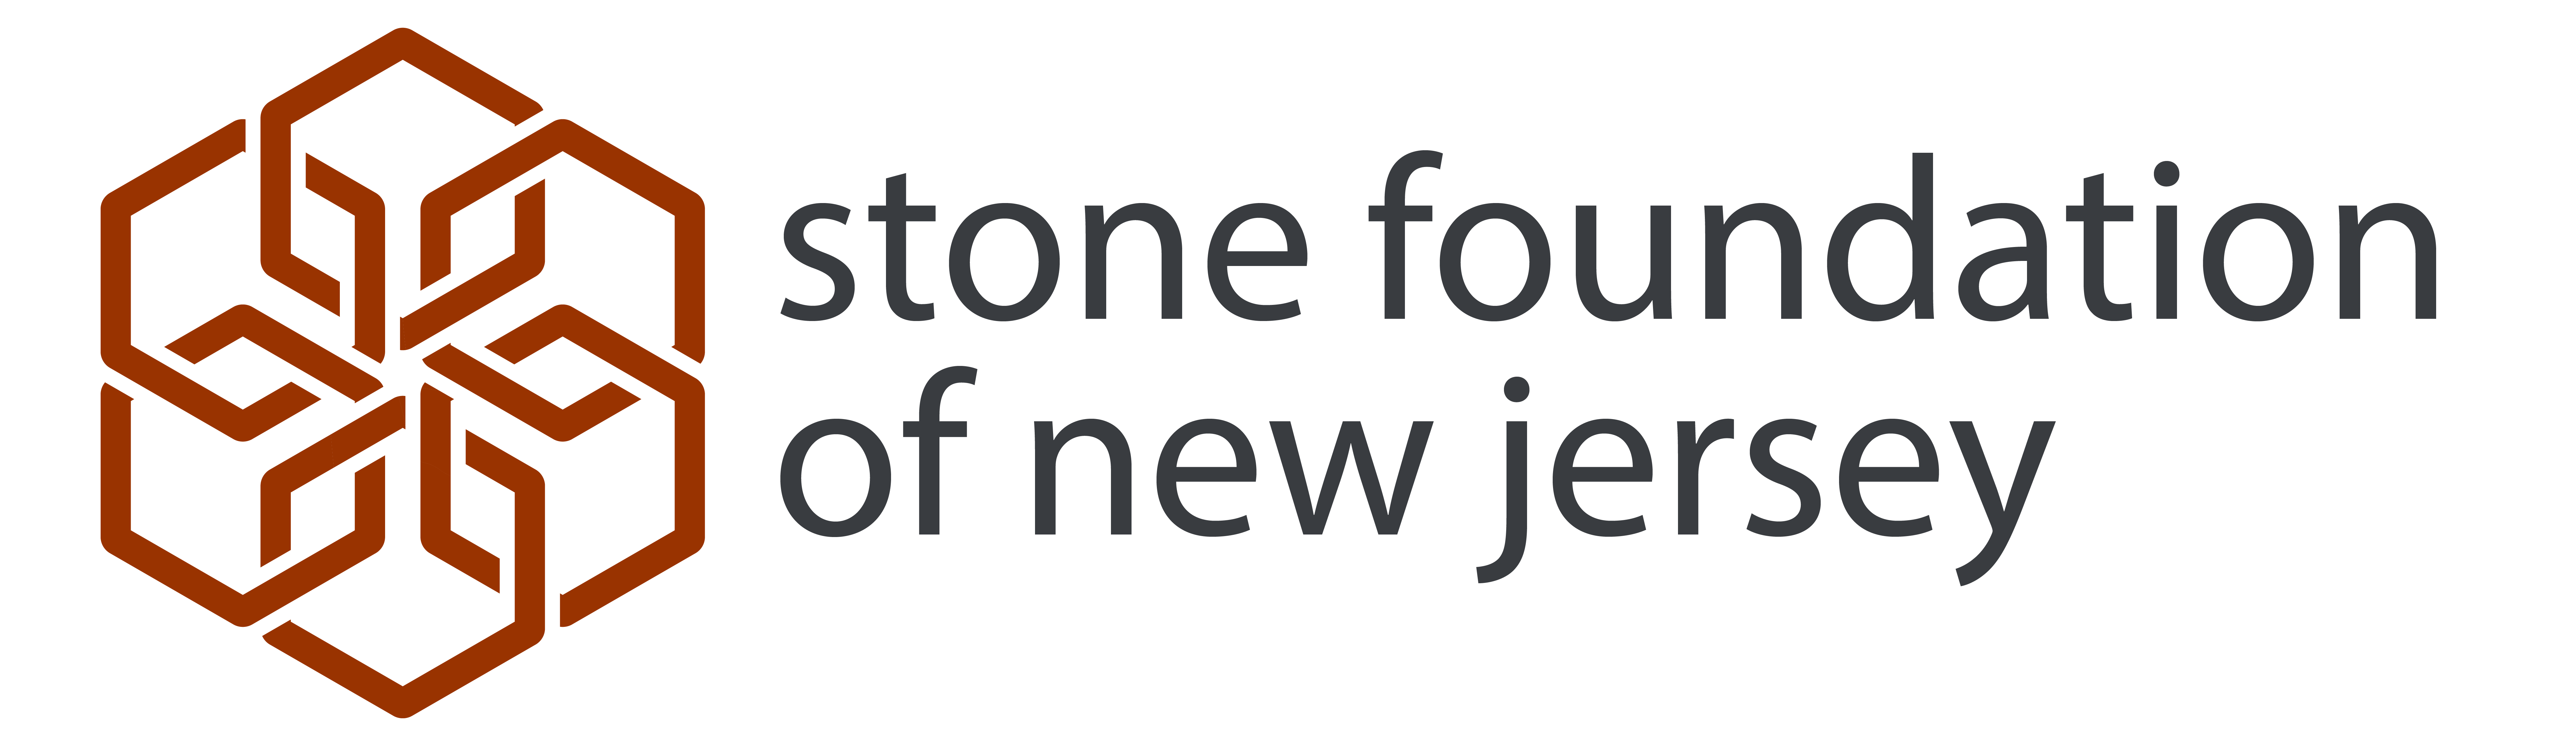 Stone Foundation of New Jersey